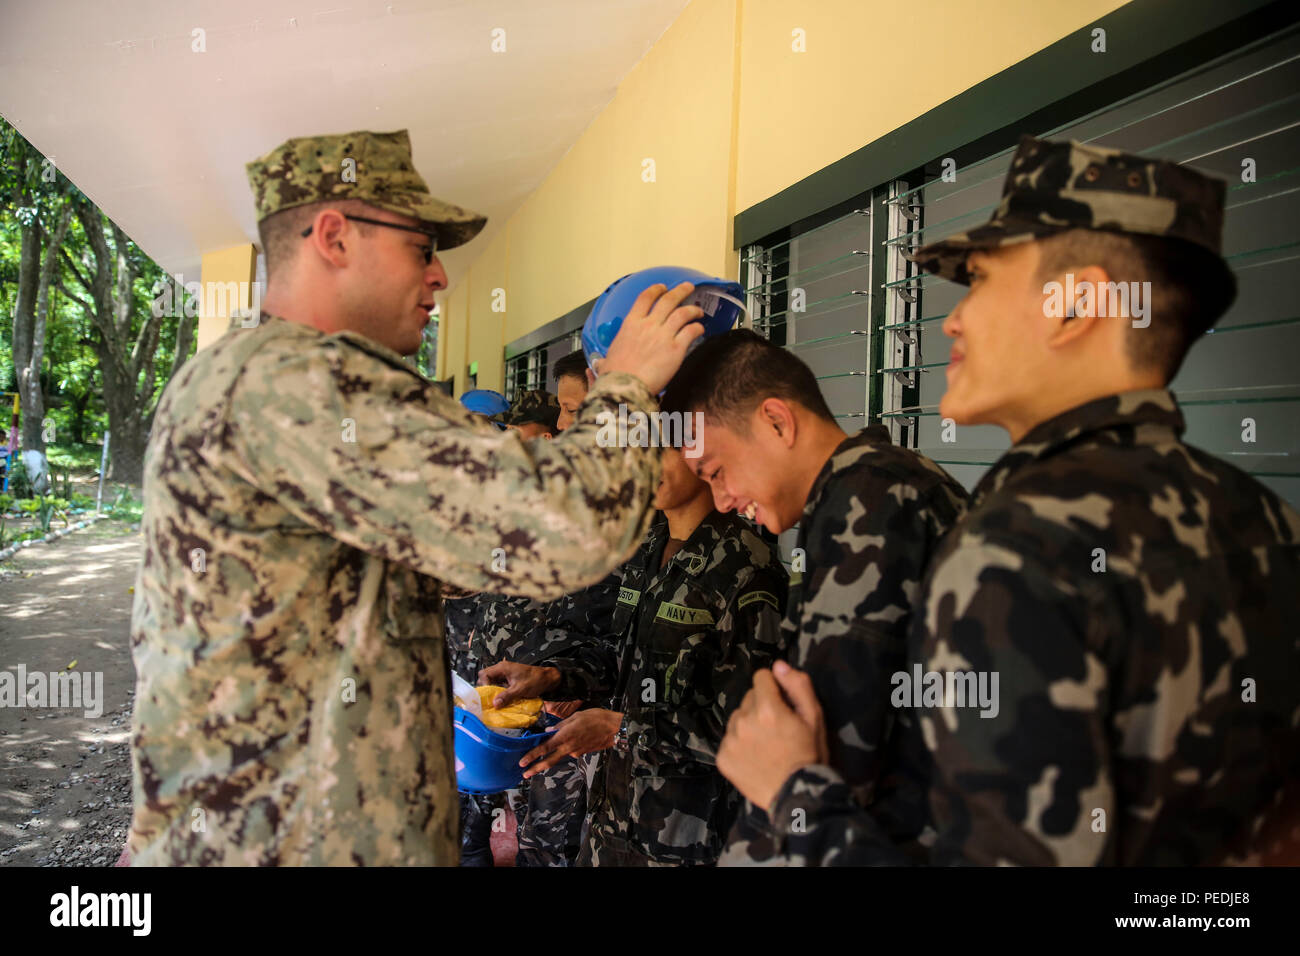 150811-M-GO800-262 FERNANDO CITY, Philippines (Aug. 11, 2015) – Seabees with Mobile Construction Battalion Five present construction helmets to members of the Philippine navy during a ribbon cutting ceremony at Boy-Utan Elementary School official opening it up for use Aug. 11. Task Force Forager will be in the Philippines until Aug. 15 providing medical and engineering assistance. Task Force Forager, embarked aboard the Military Sealift Command joint high speed vessel USNS Millinocket (JHSV 3) is serving as the secondary platform for Pacific Partnership, led by an expeditionary command element - Stock Image